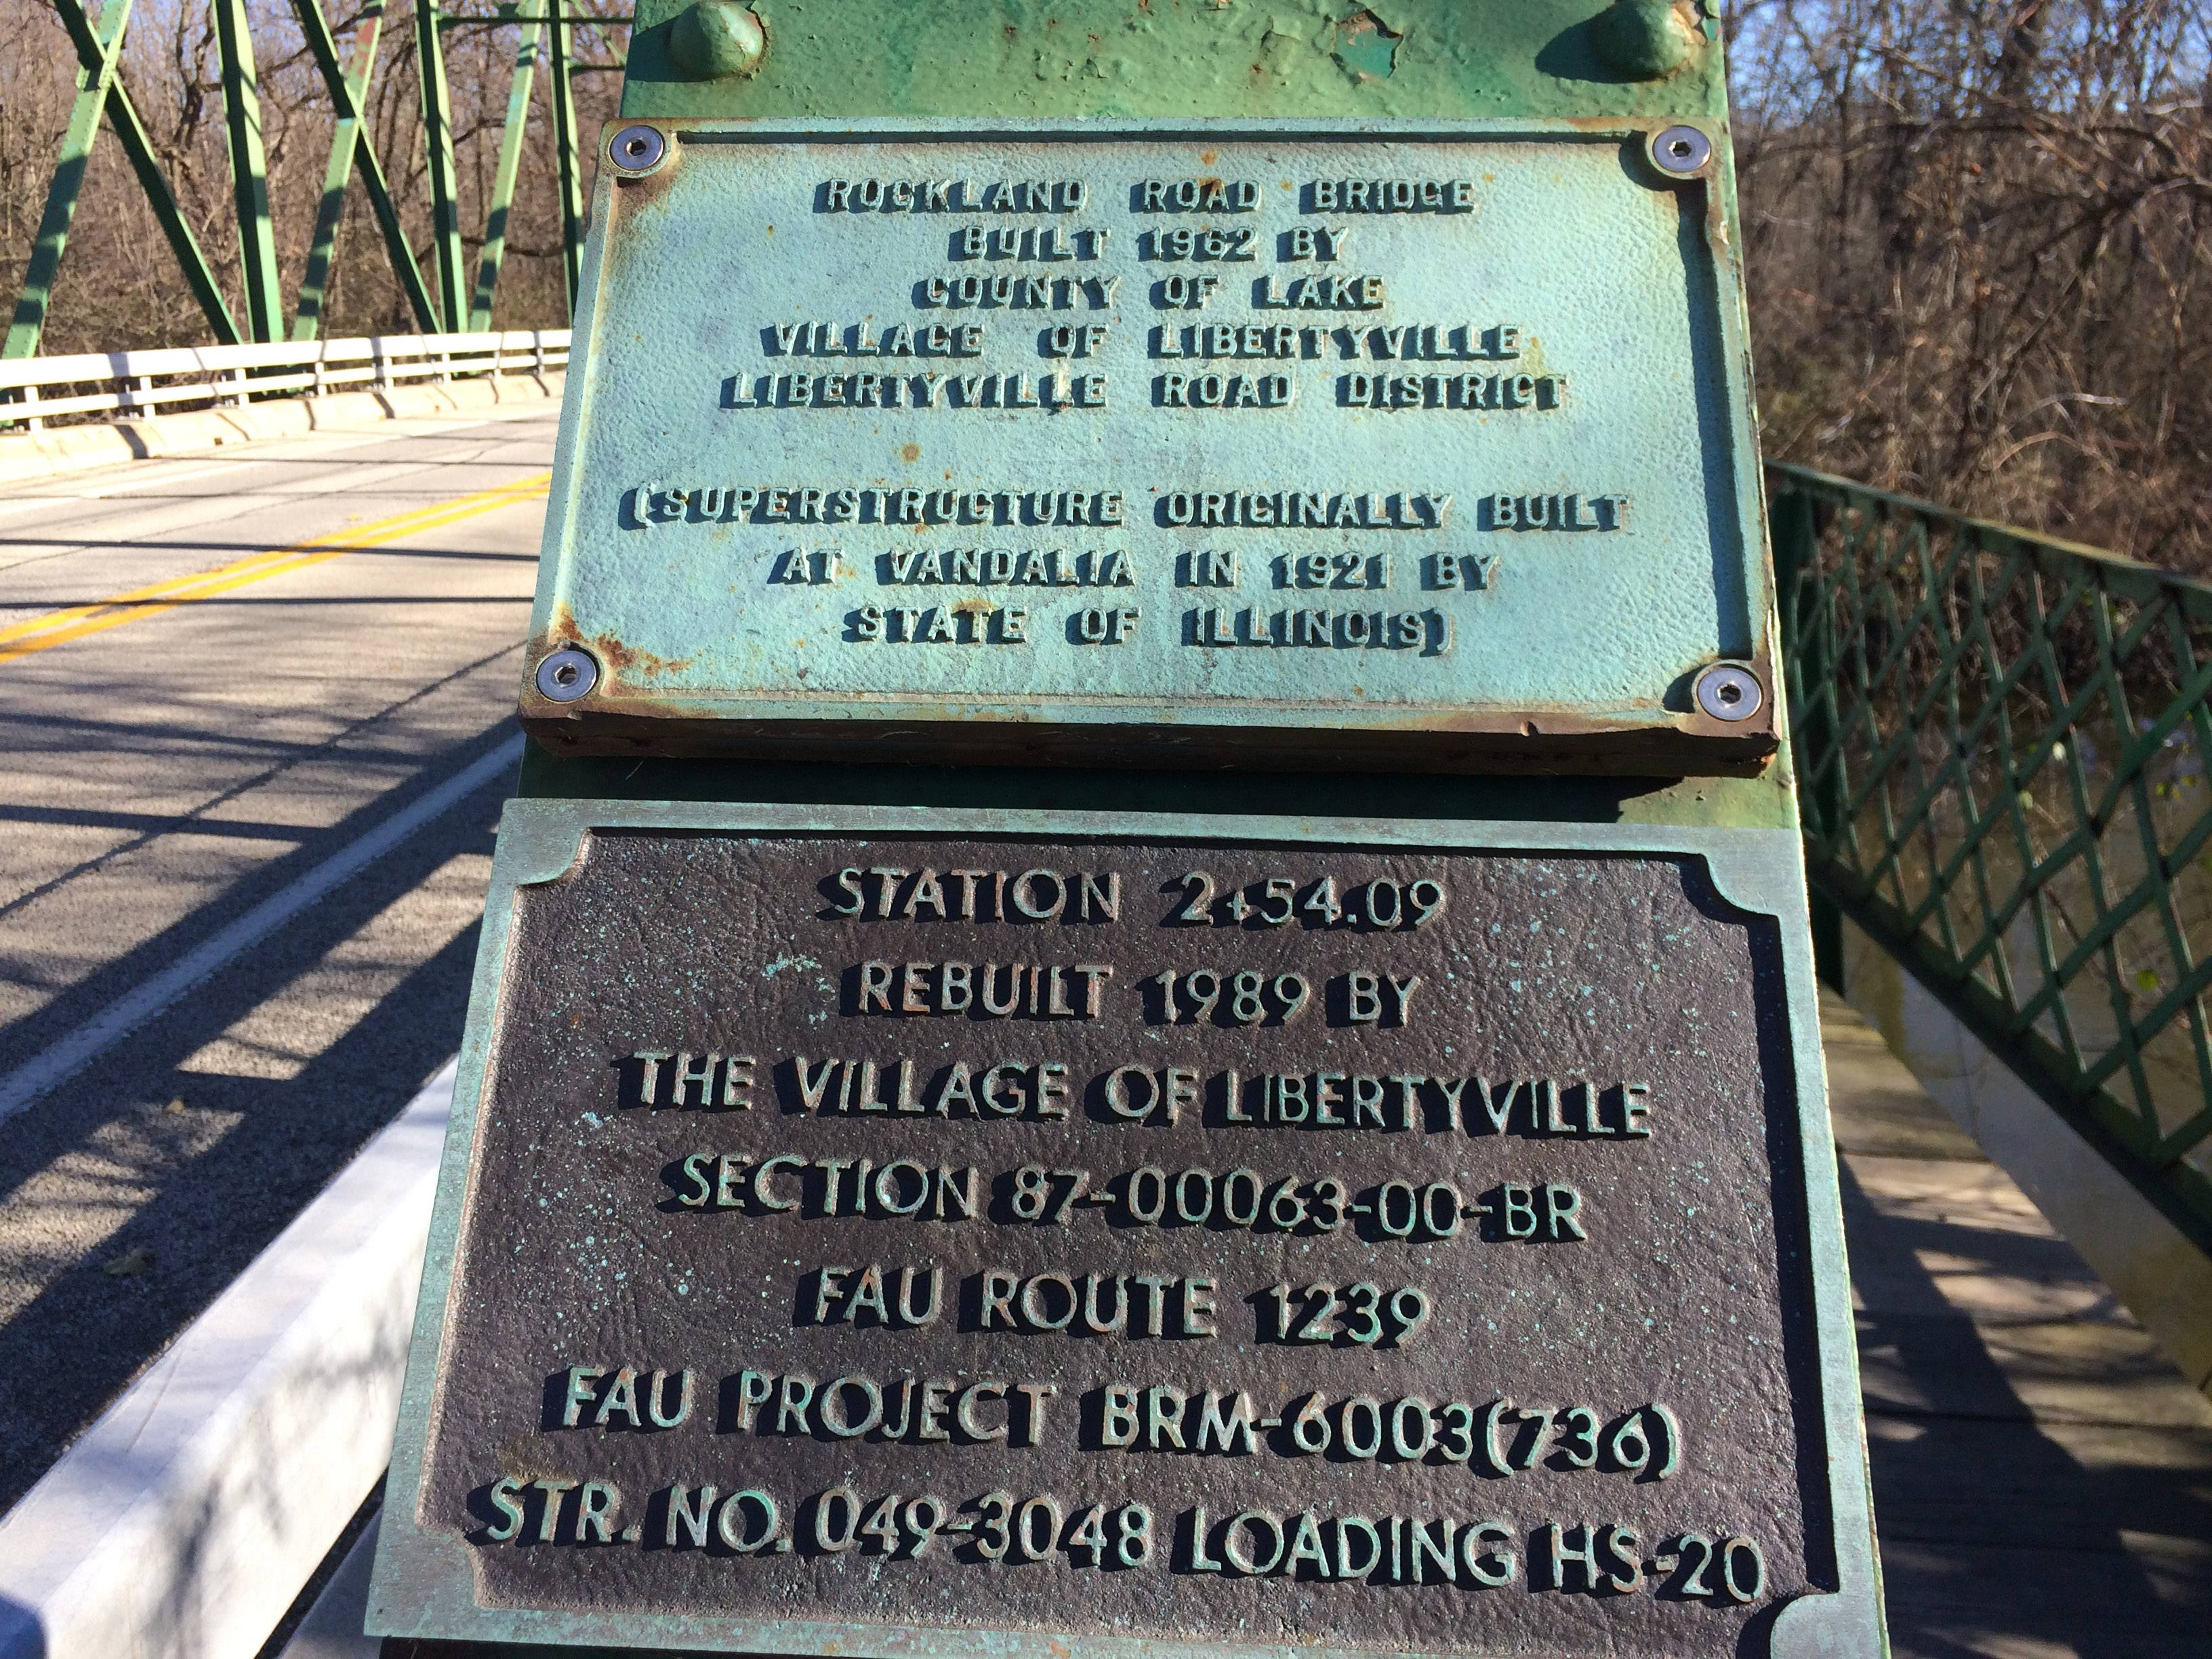 A plaque on the Rockland Road bridge in Libertyville.